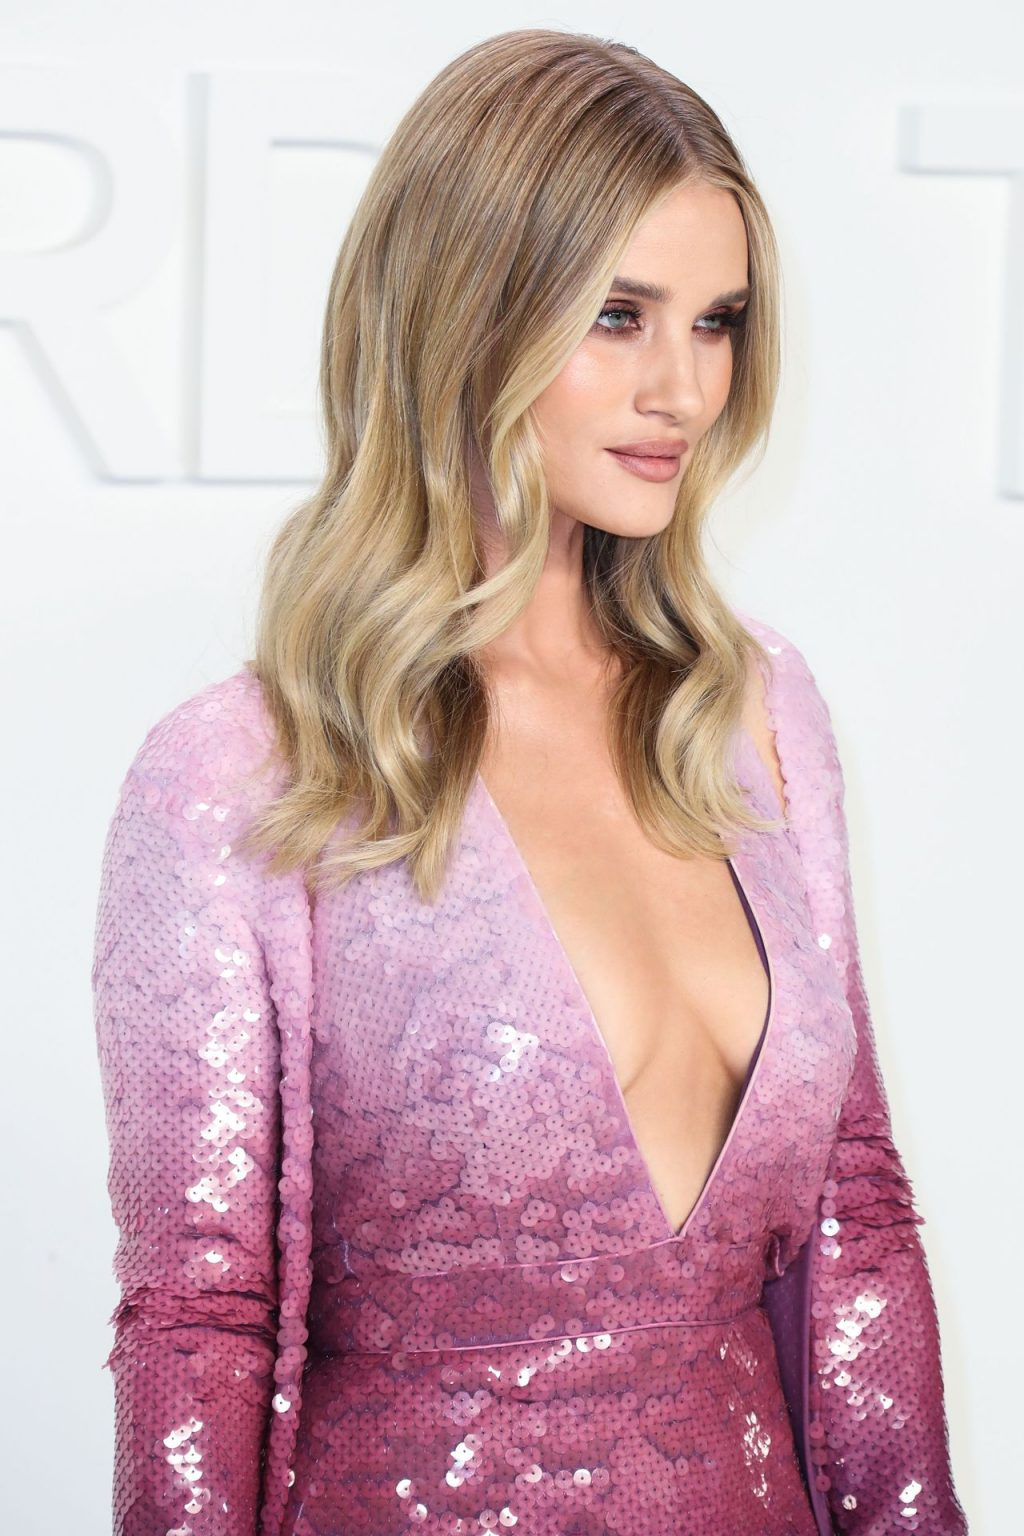 Rosie Huntington Whiteley Sexy The Fappening Blog 113 1024x1536 - Rosie Huntington-Whiteley Shows Her Cleavage at the Tom Ford Fashion Show (115 Photos)